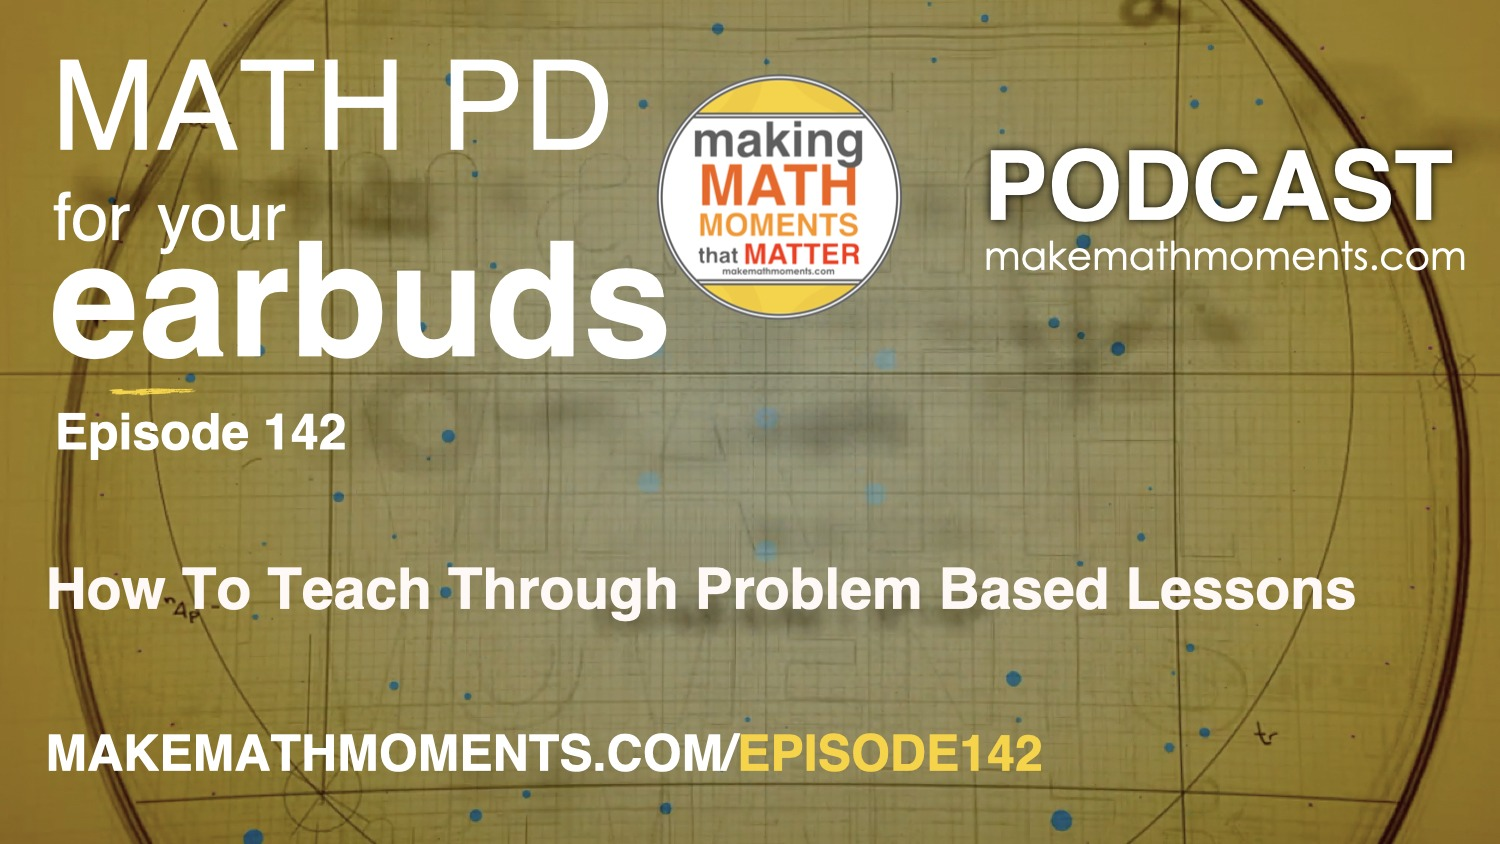 Episode 142: How To Teach Through Problem Based Lessons